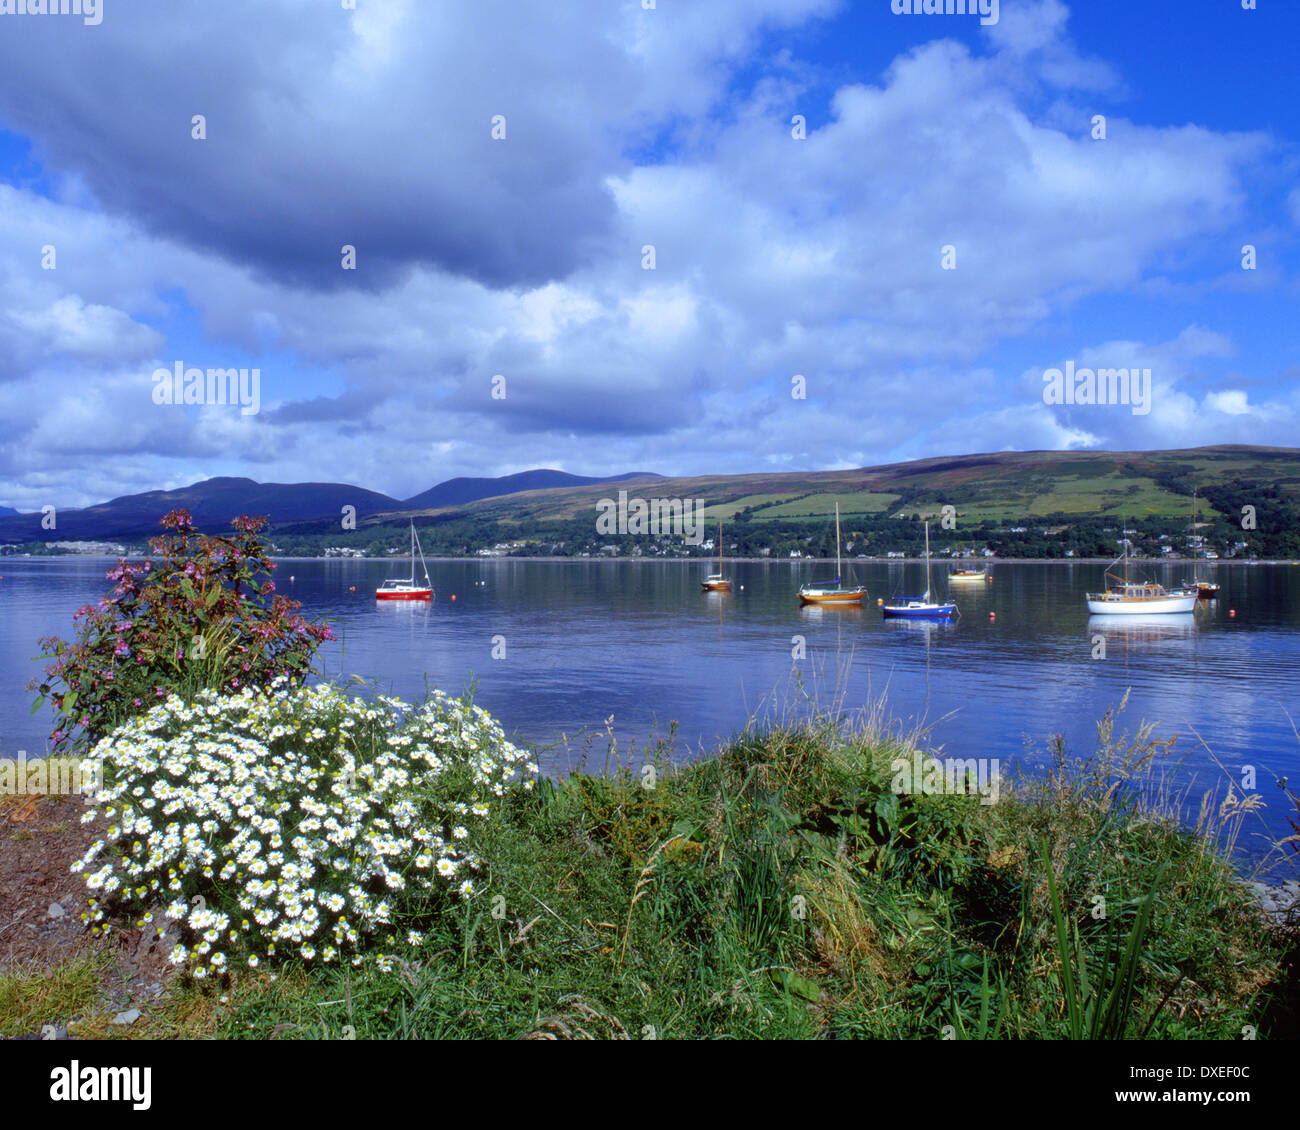 Gareloch on the rosneath peninsula, Clyde. - Stock Image